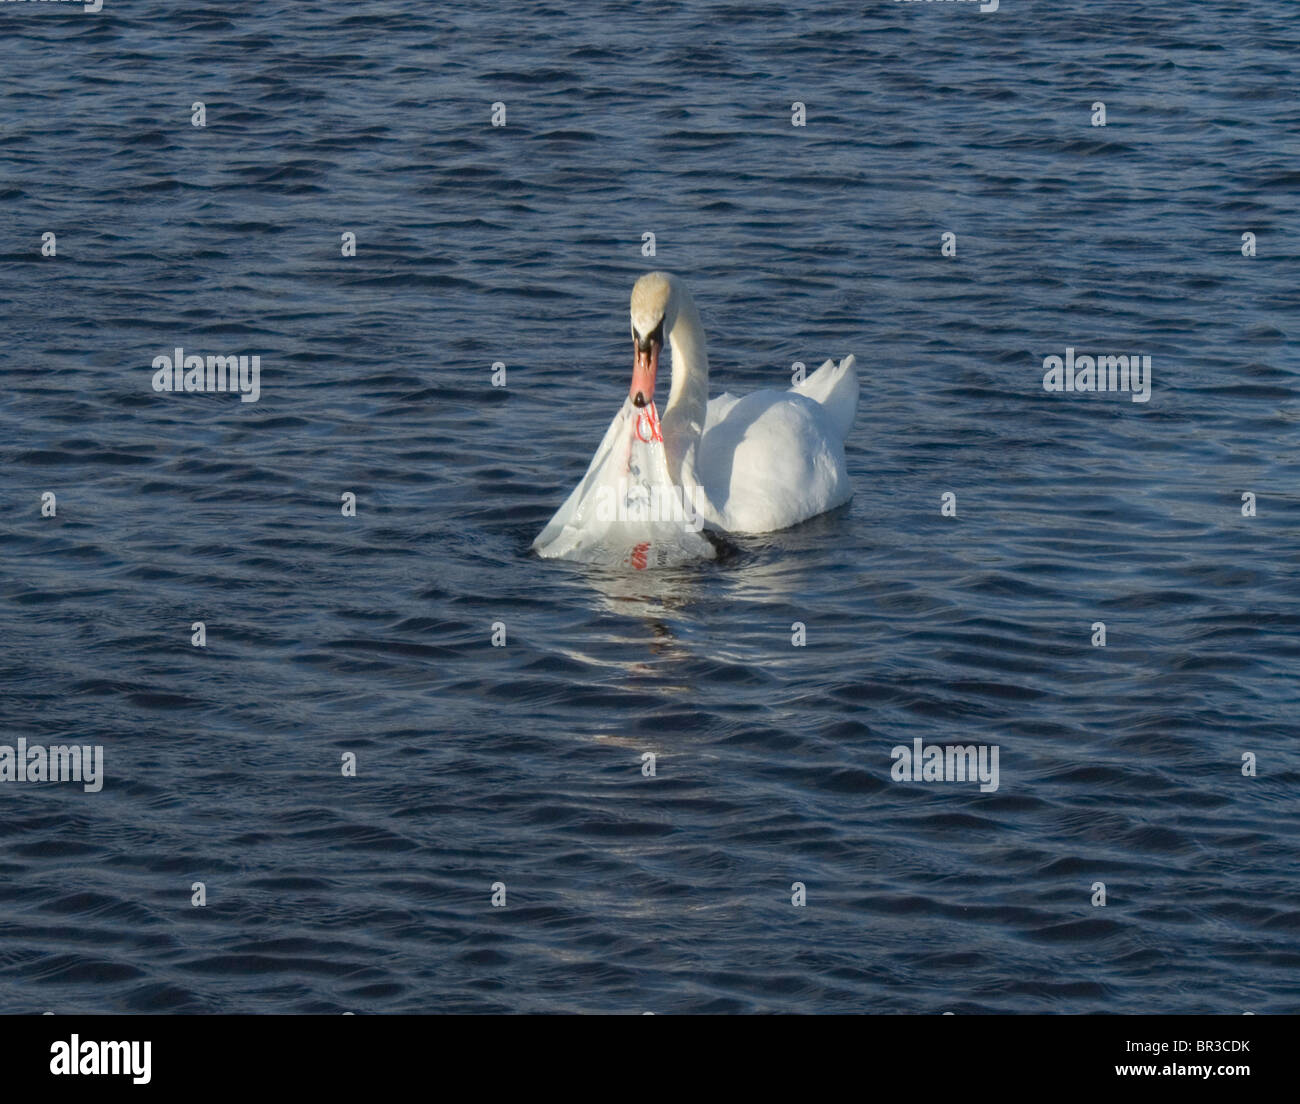 A white swan investigating a plastic supermarket bag which was floating in a pond in Hyde Park, London, England - Stock Image